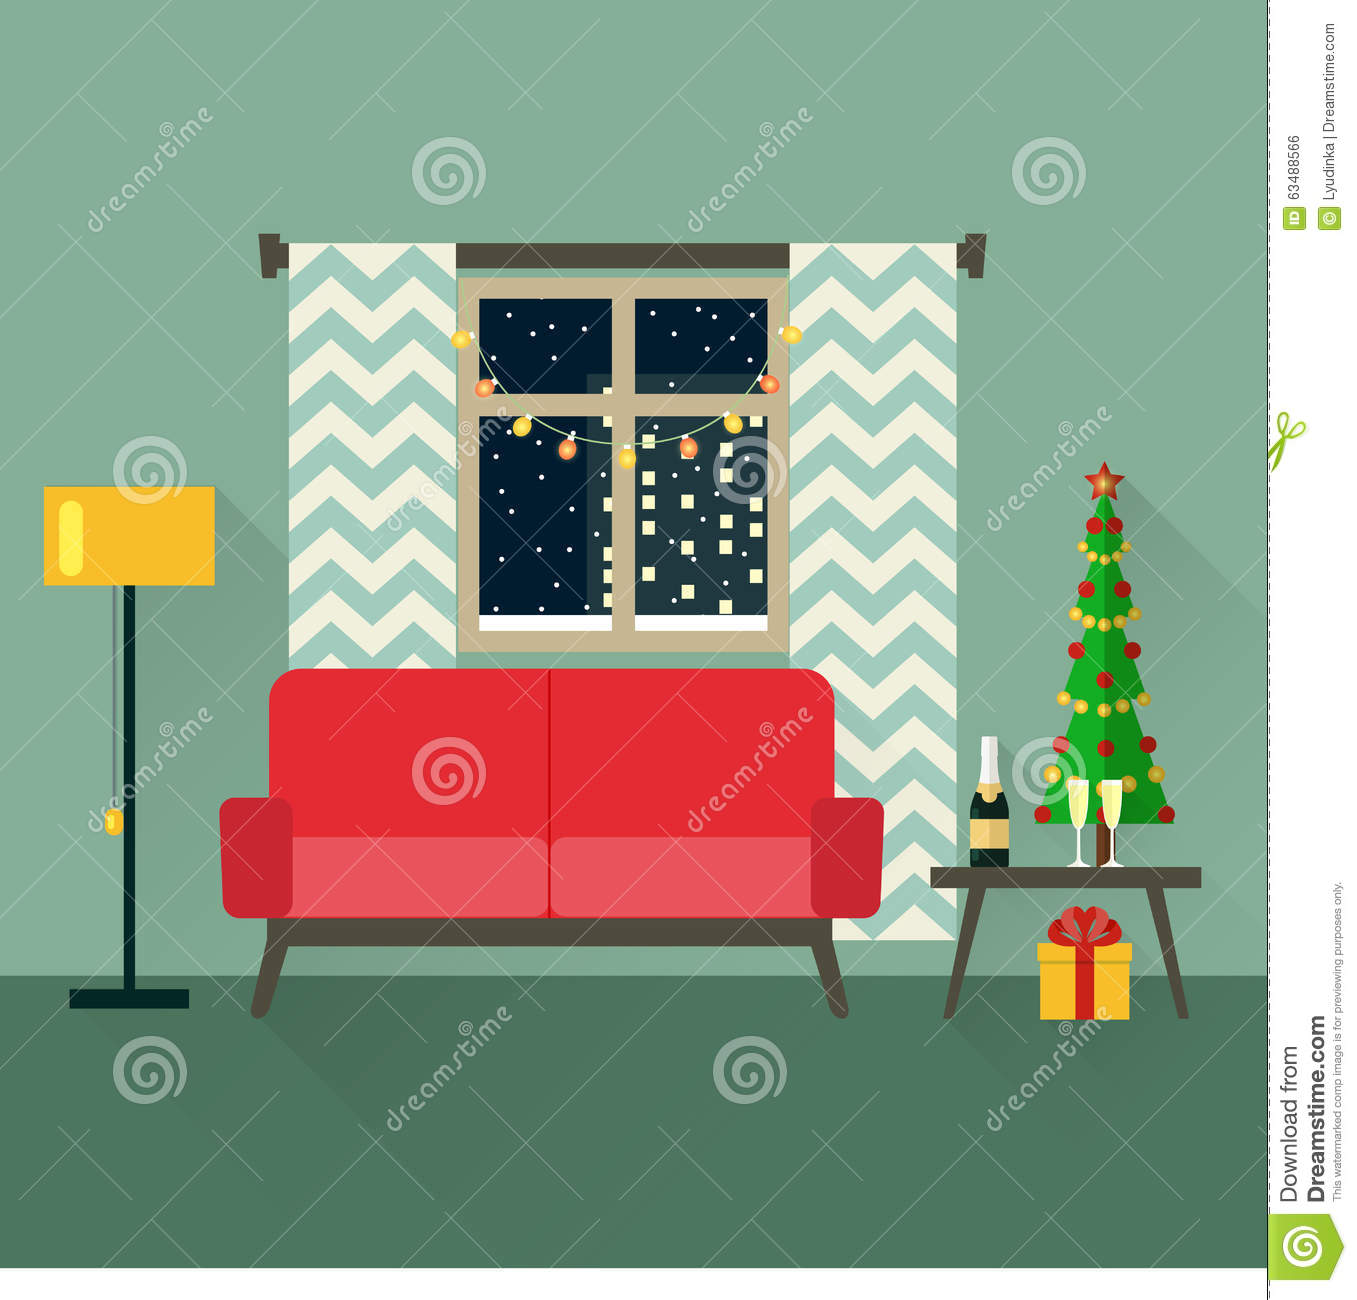 Christmas Room Stock Vector Image Of Illuminated: Holiday Vector Concept Illustration In Flat Style